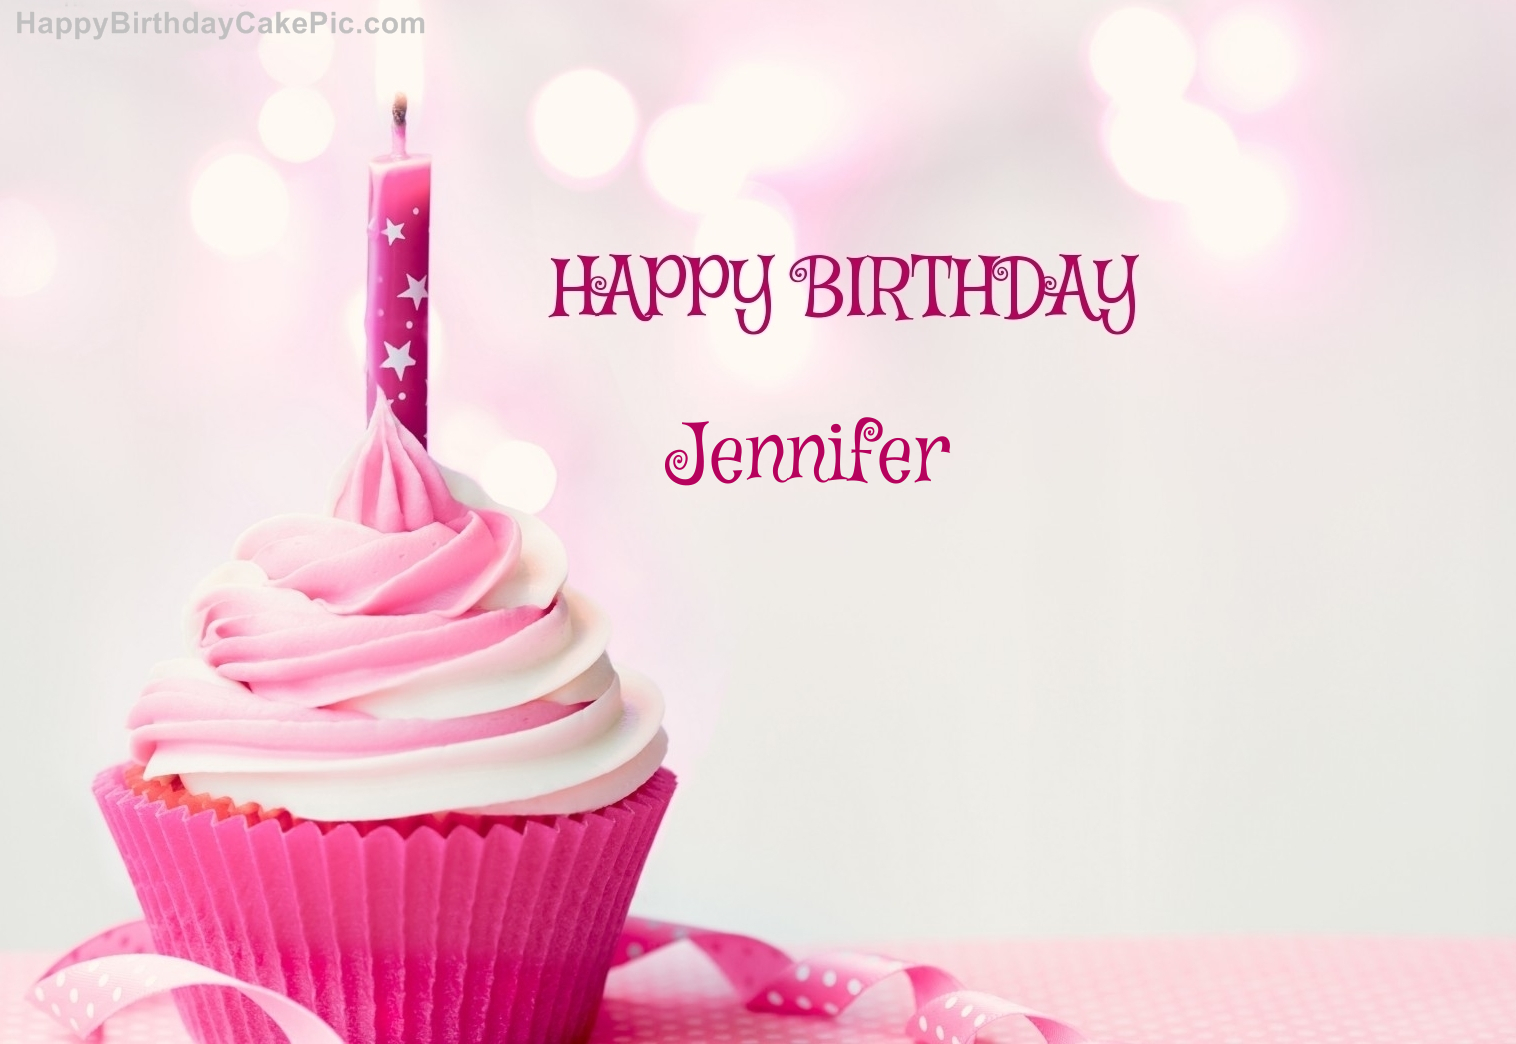 Happy Birthday Cupcake Candle Pink Cake For Jennifer